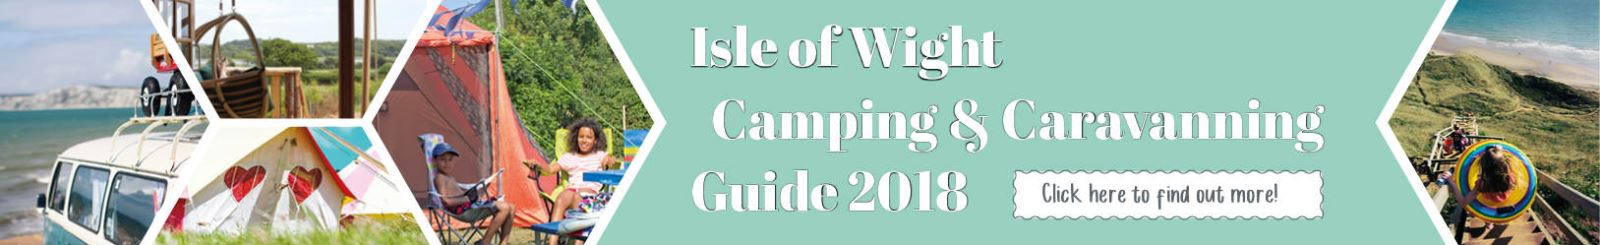 Information about the Isle of Wight Camping guide